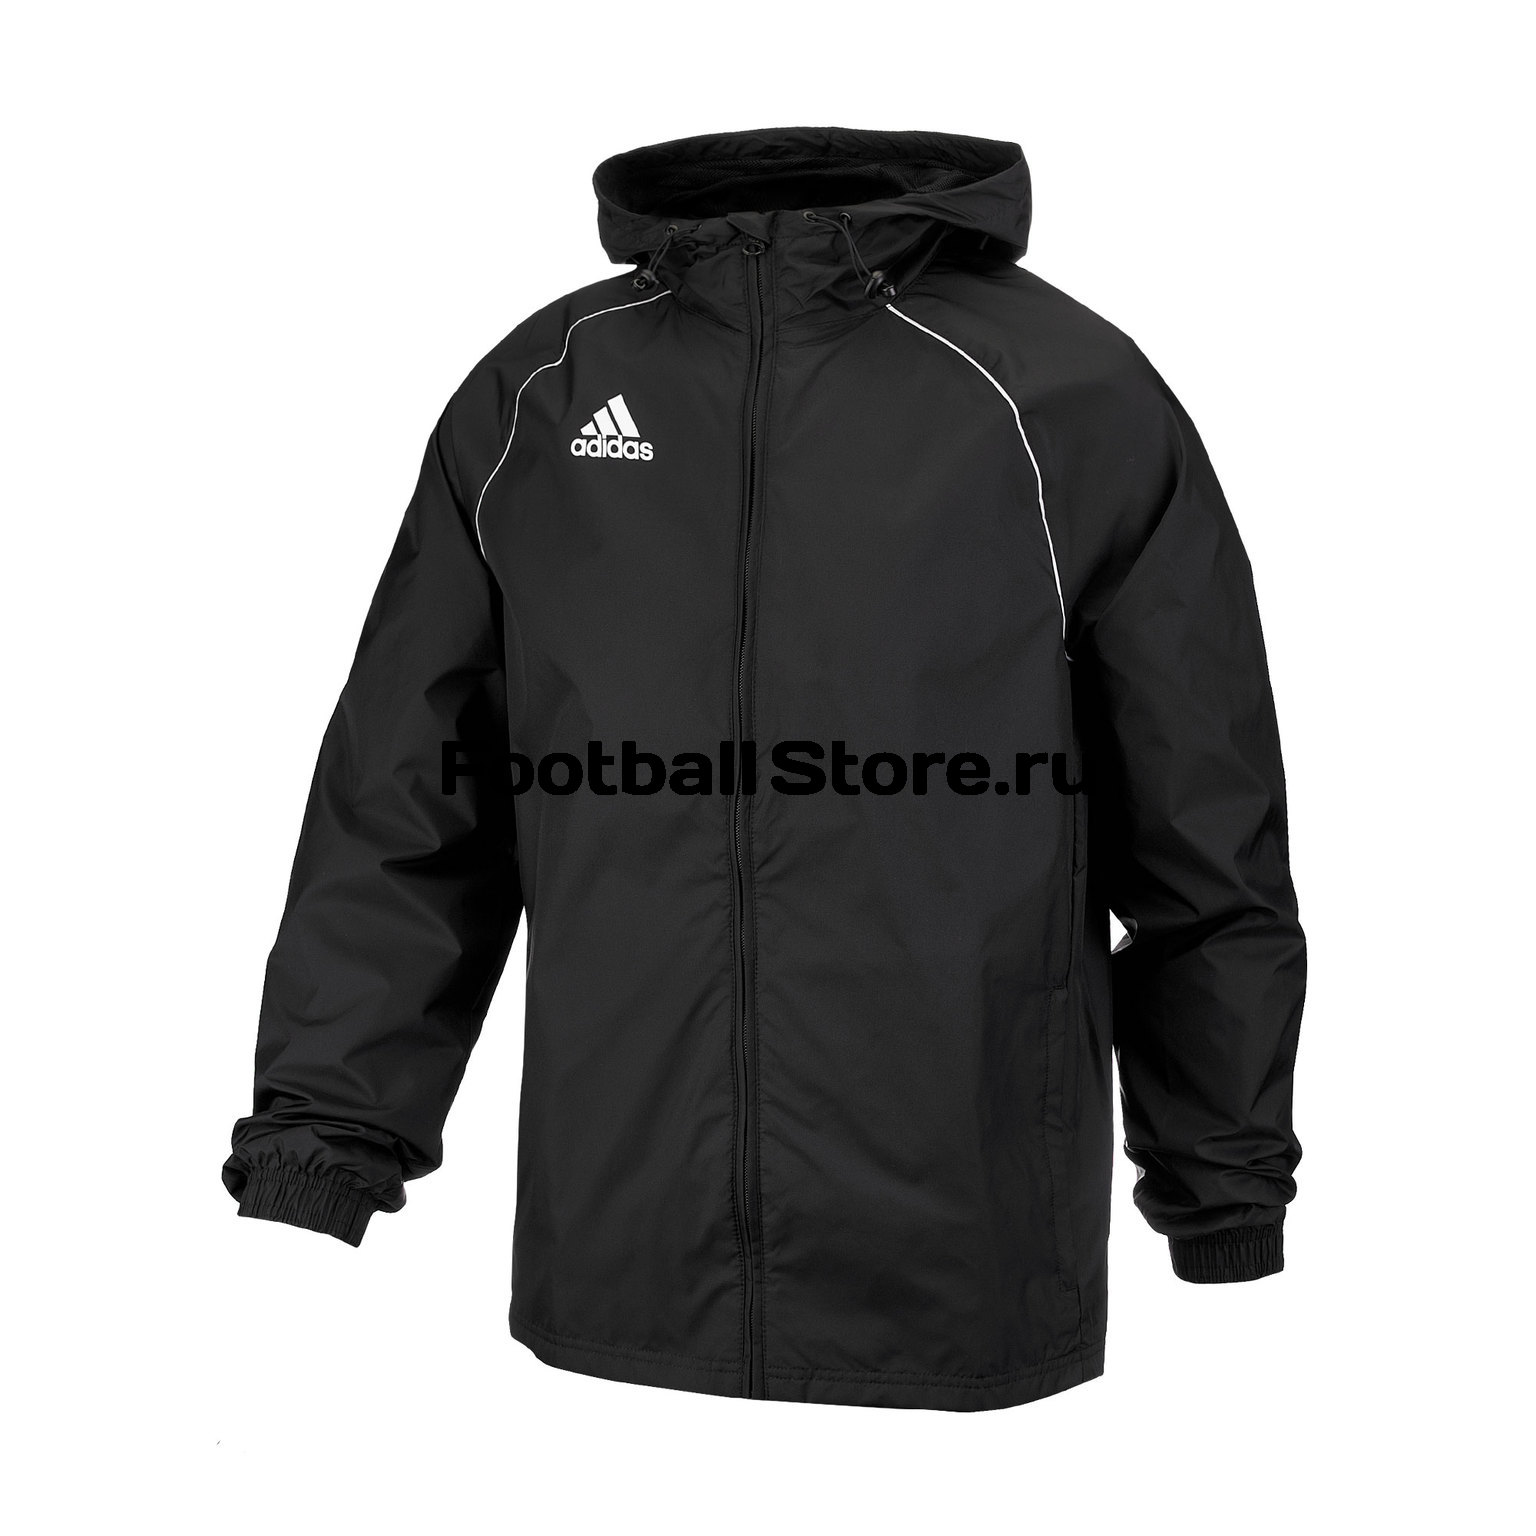 Ветровка Adidas Core18 Rain Jkt CE9048 олимпийка мужская adidas tan club h jkt цвет черный dw9360 размер xs 40 42